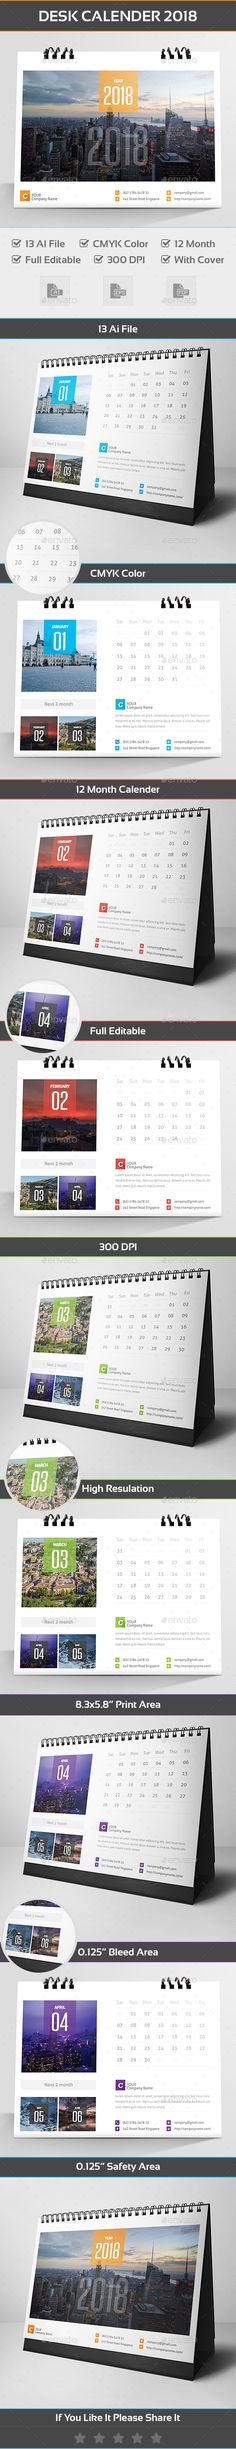 /illustrator-calendar-template/illustrator-calendar-template-32